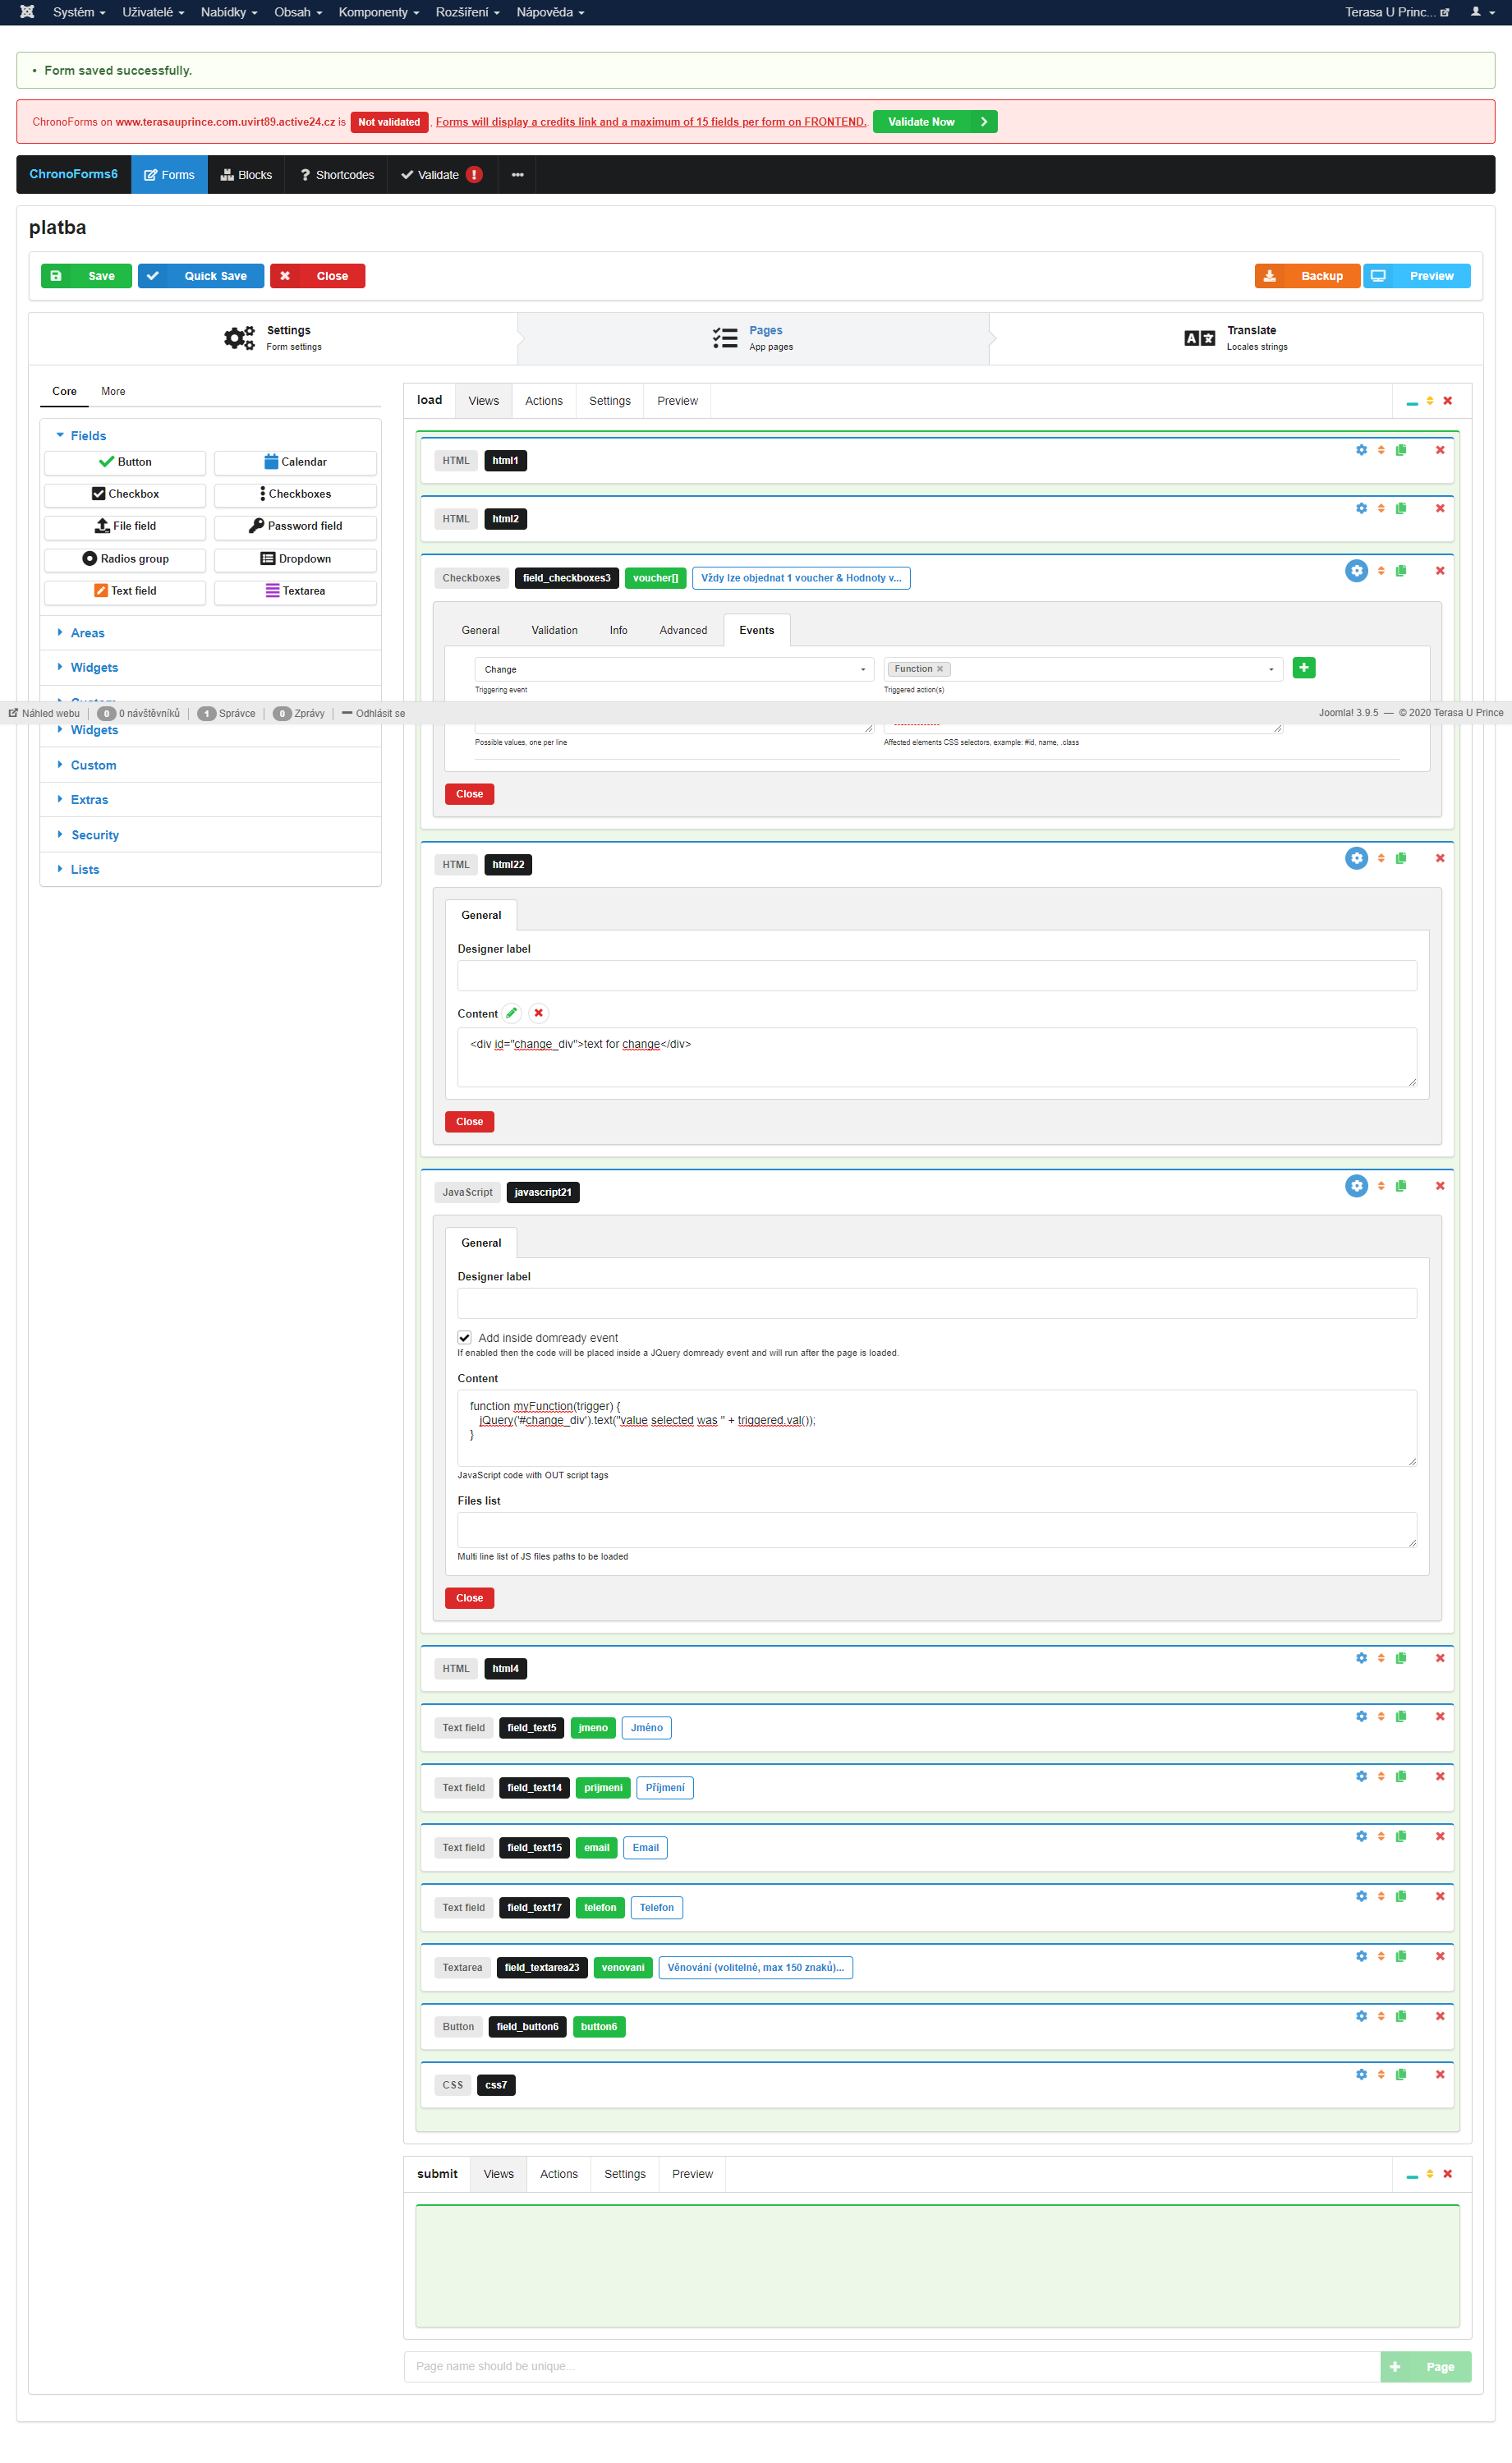 screencapture-terasauprince-uvirt89-active24-cz-administrator-index-php-2020-01-09-19_58_01.png